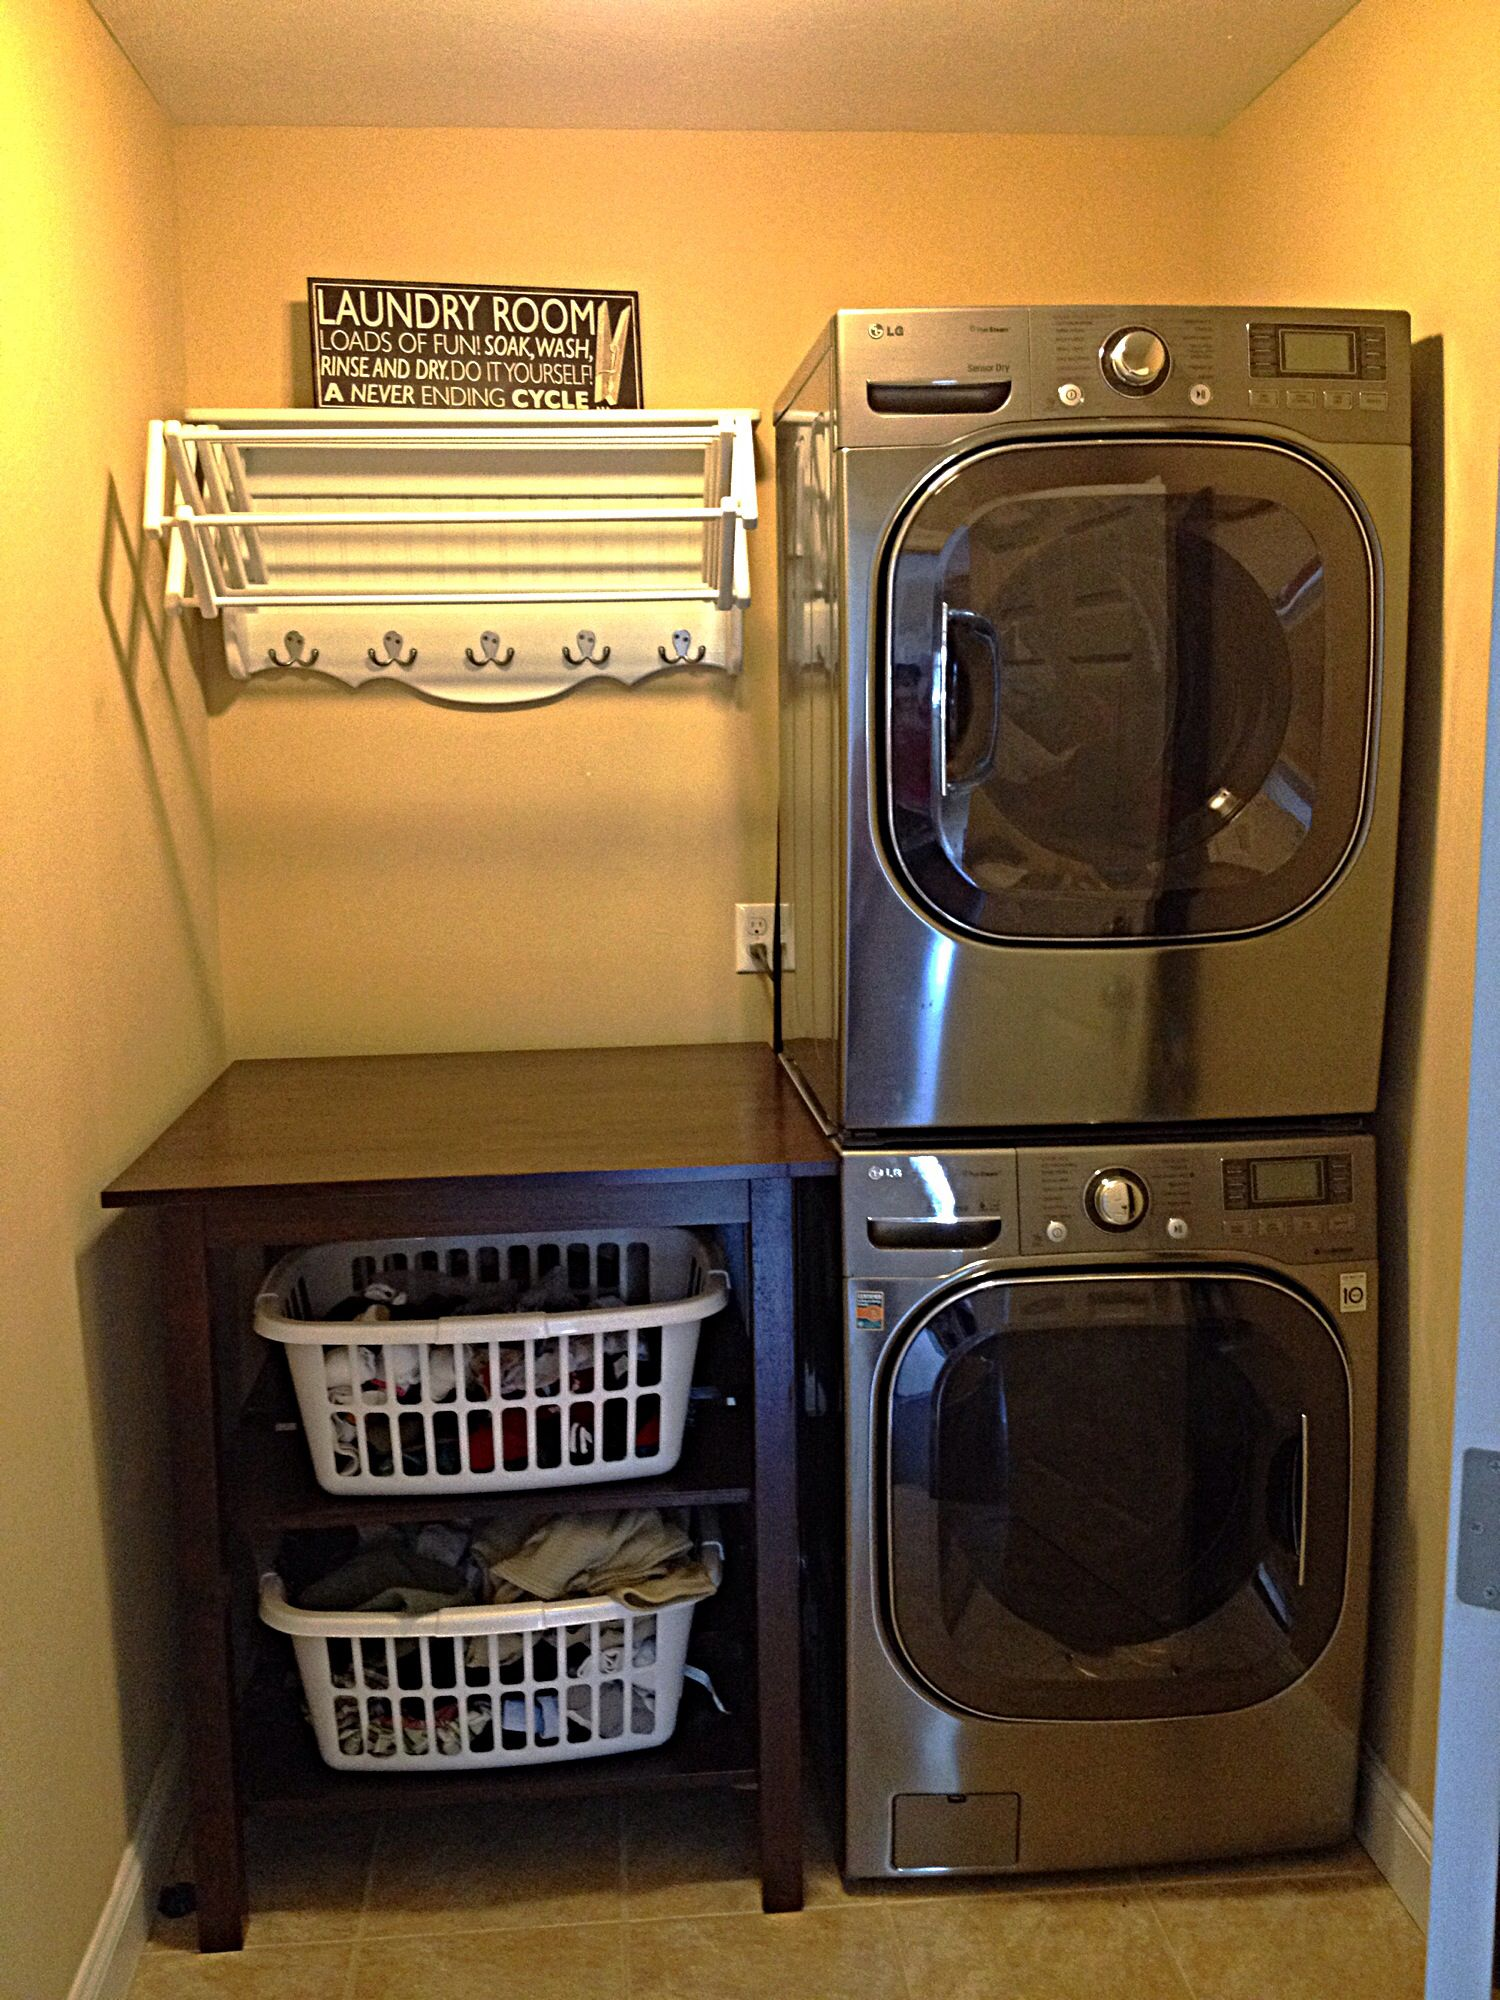 - Finished Laundry Room, Washer/dryer Stacked To Create Room For